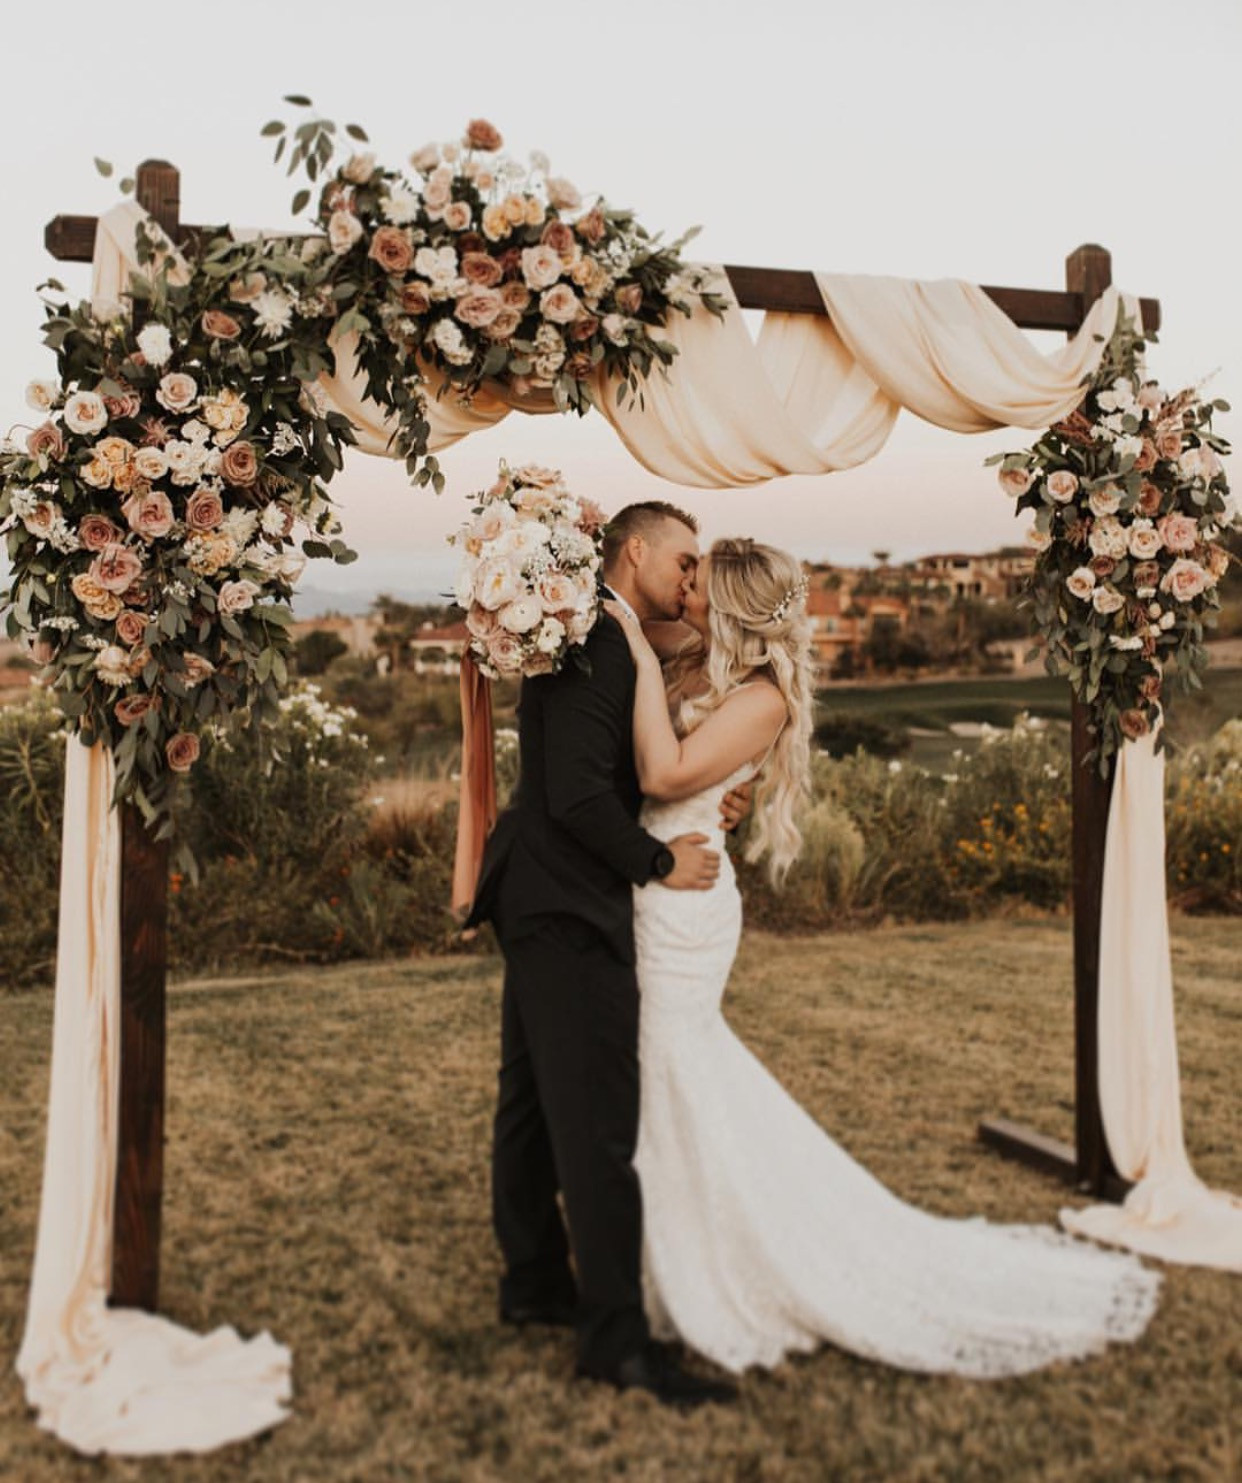 Wedding arch in shades of blush, mauve and taupe. Photo: Sunny Heers